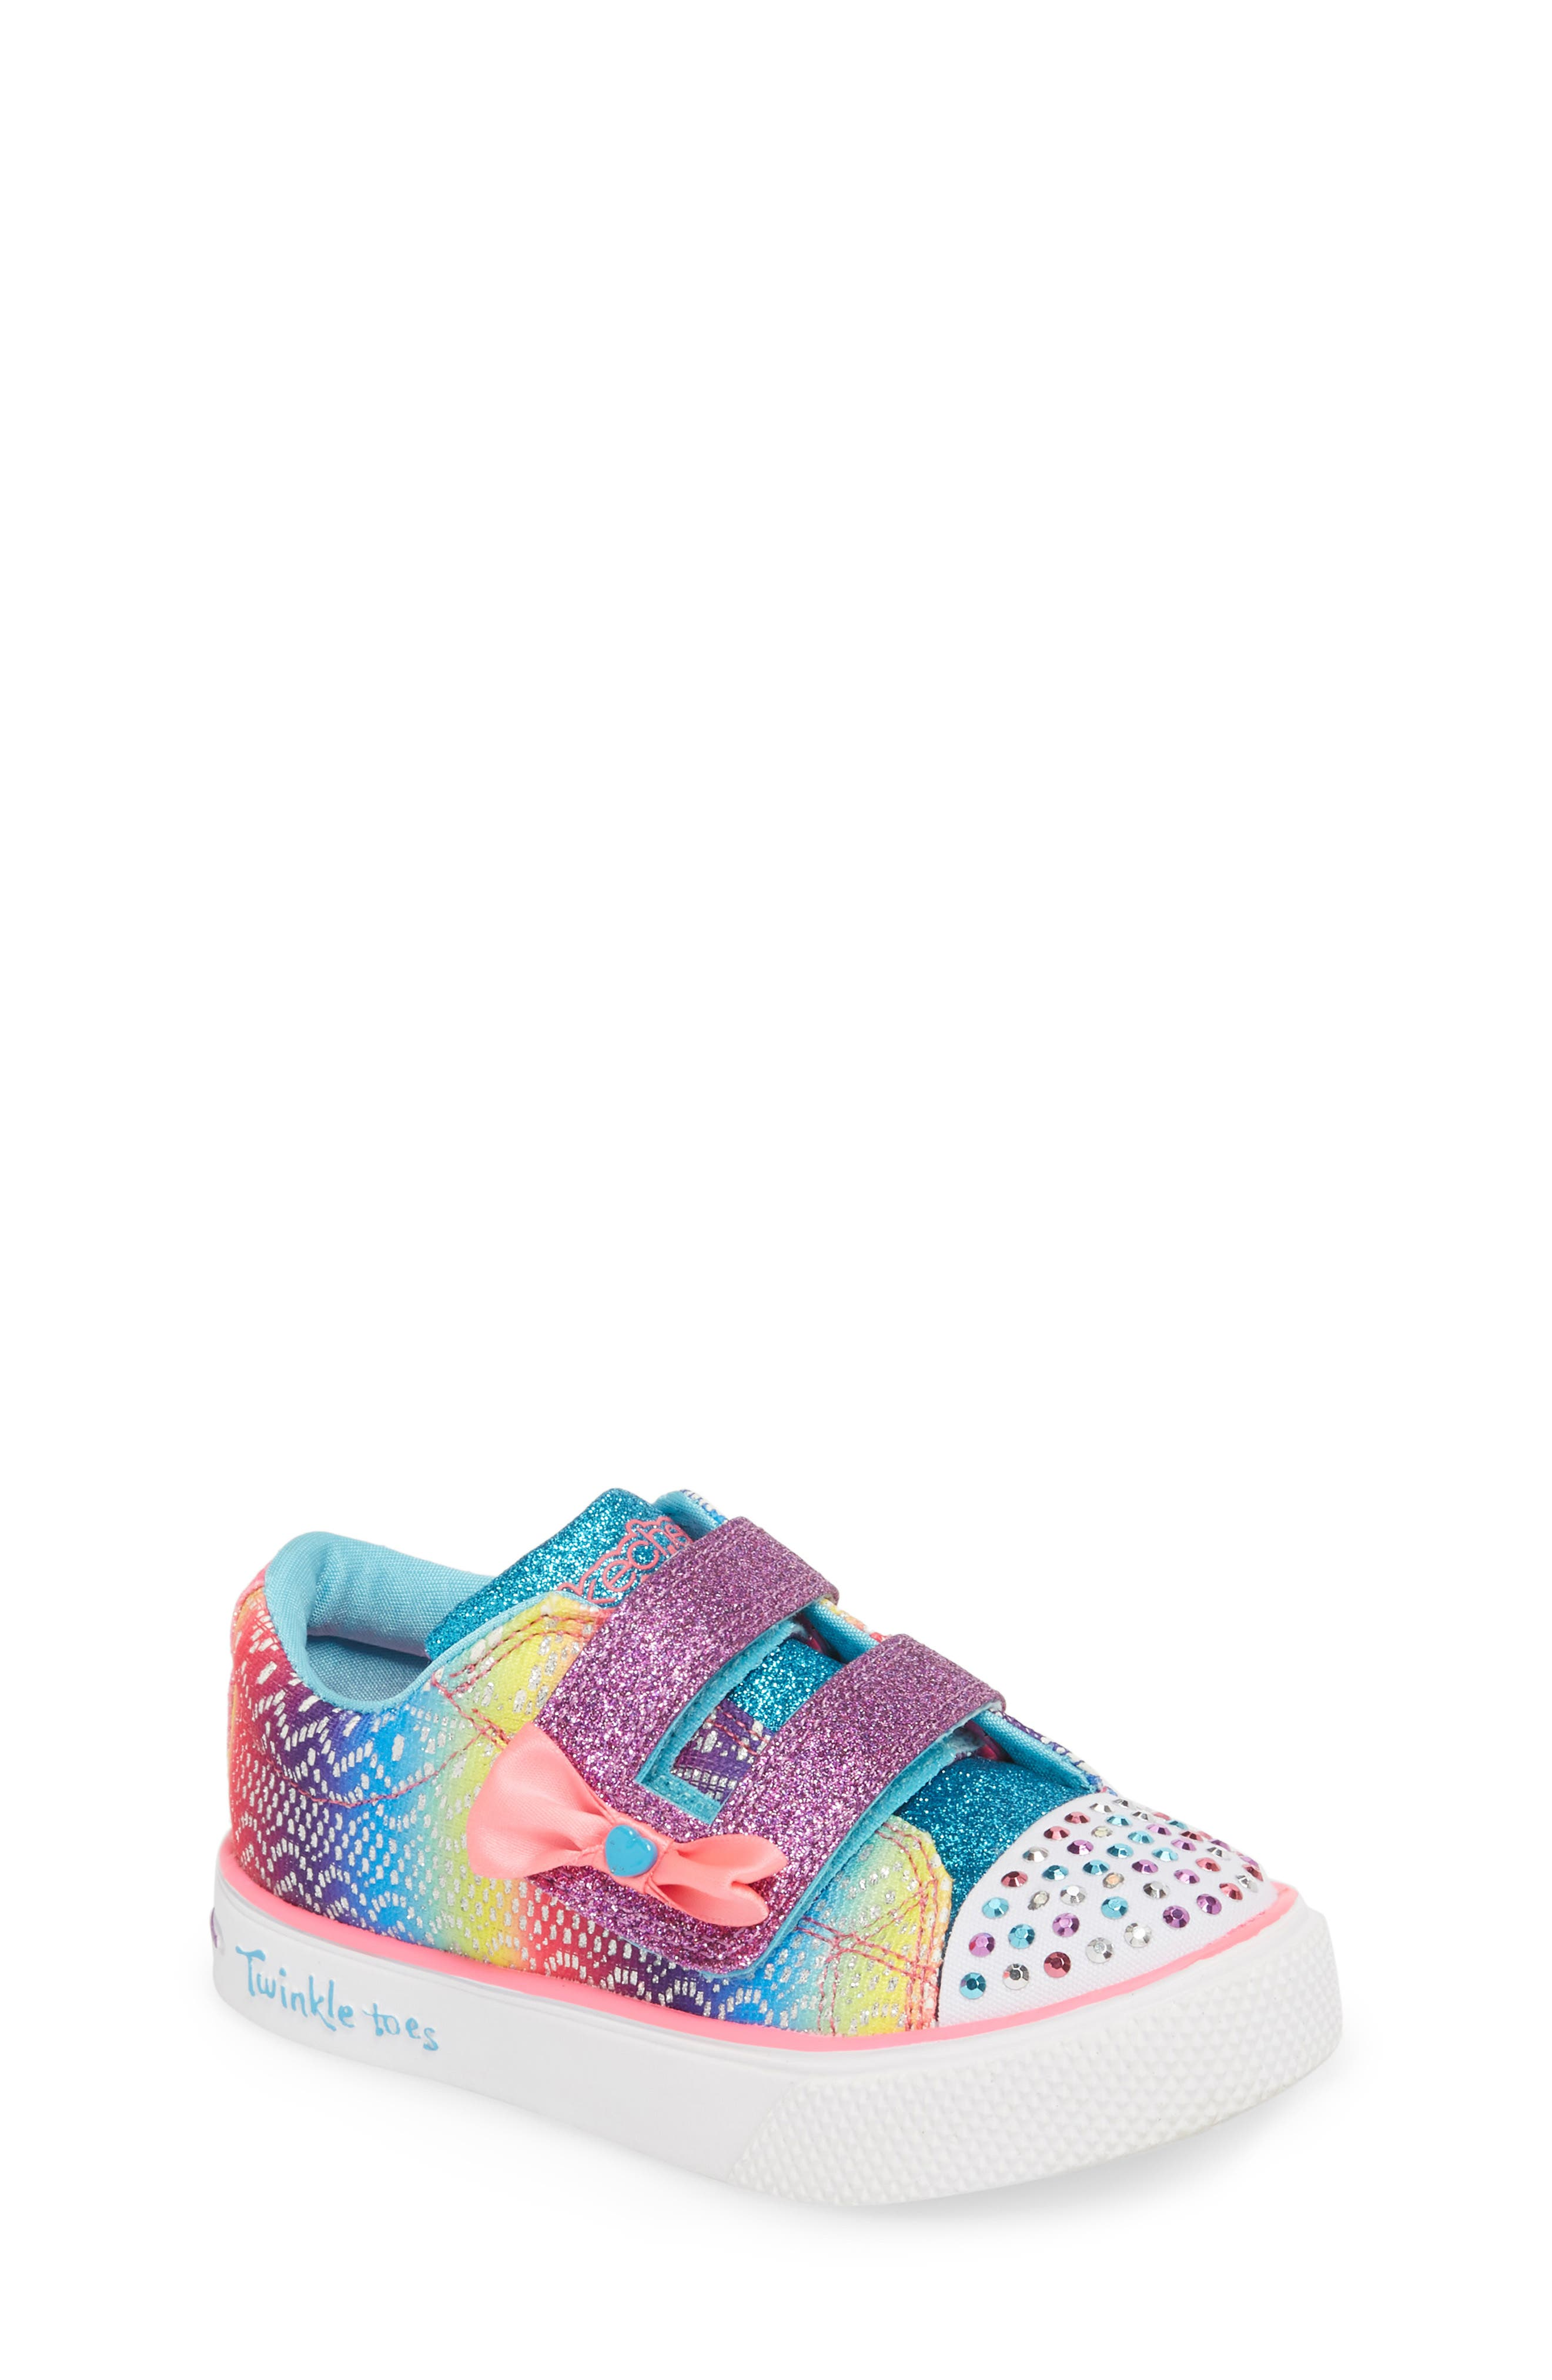 Twinkle Toes Breeze 2.0 Light-Up Sneaker,                         Main,                         color, Multi